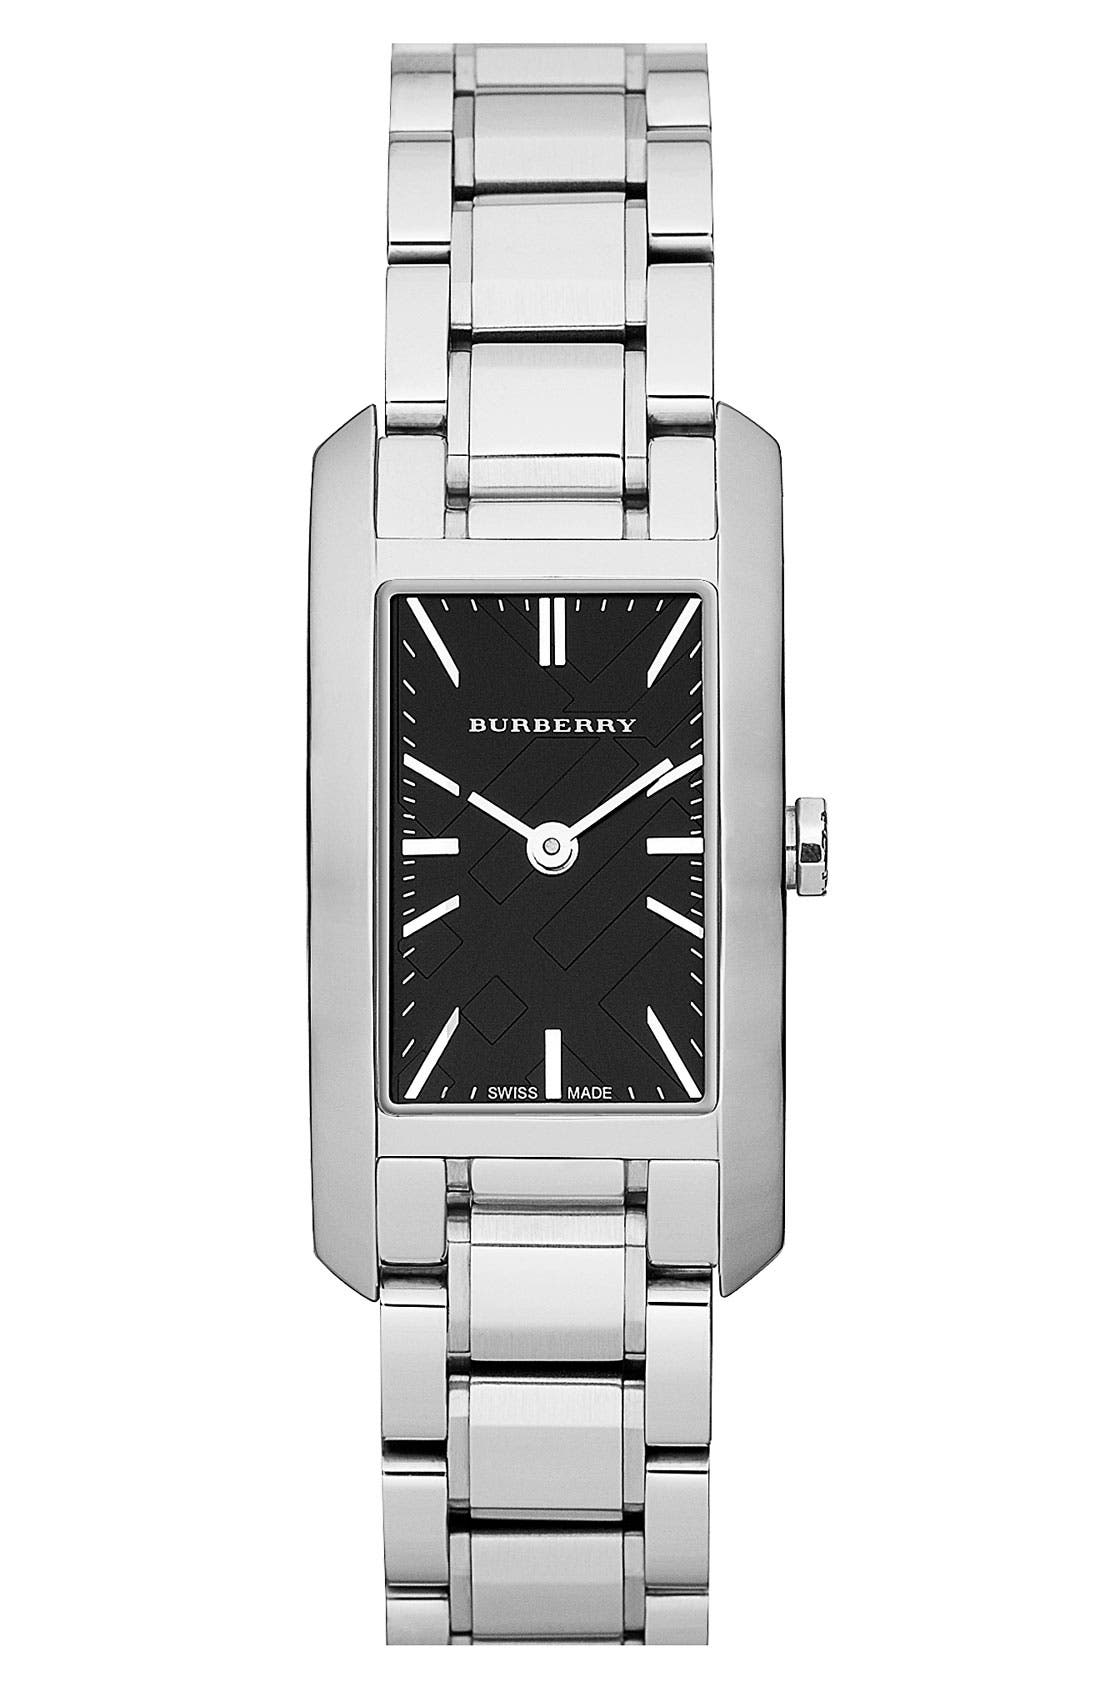 Alternate Image 1 Selected - Burberry Rectangular Bracelet Watch, 20mm x 26mm